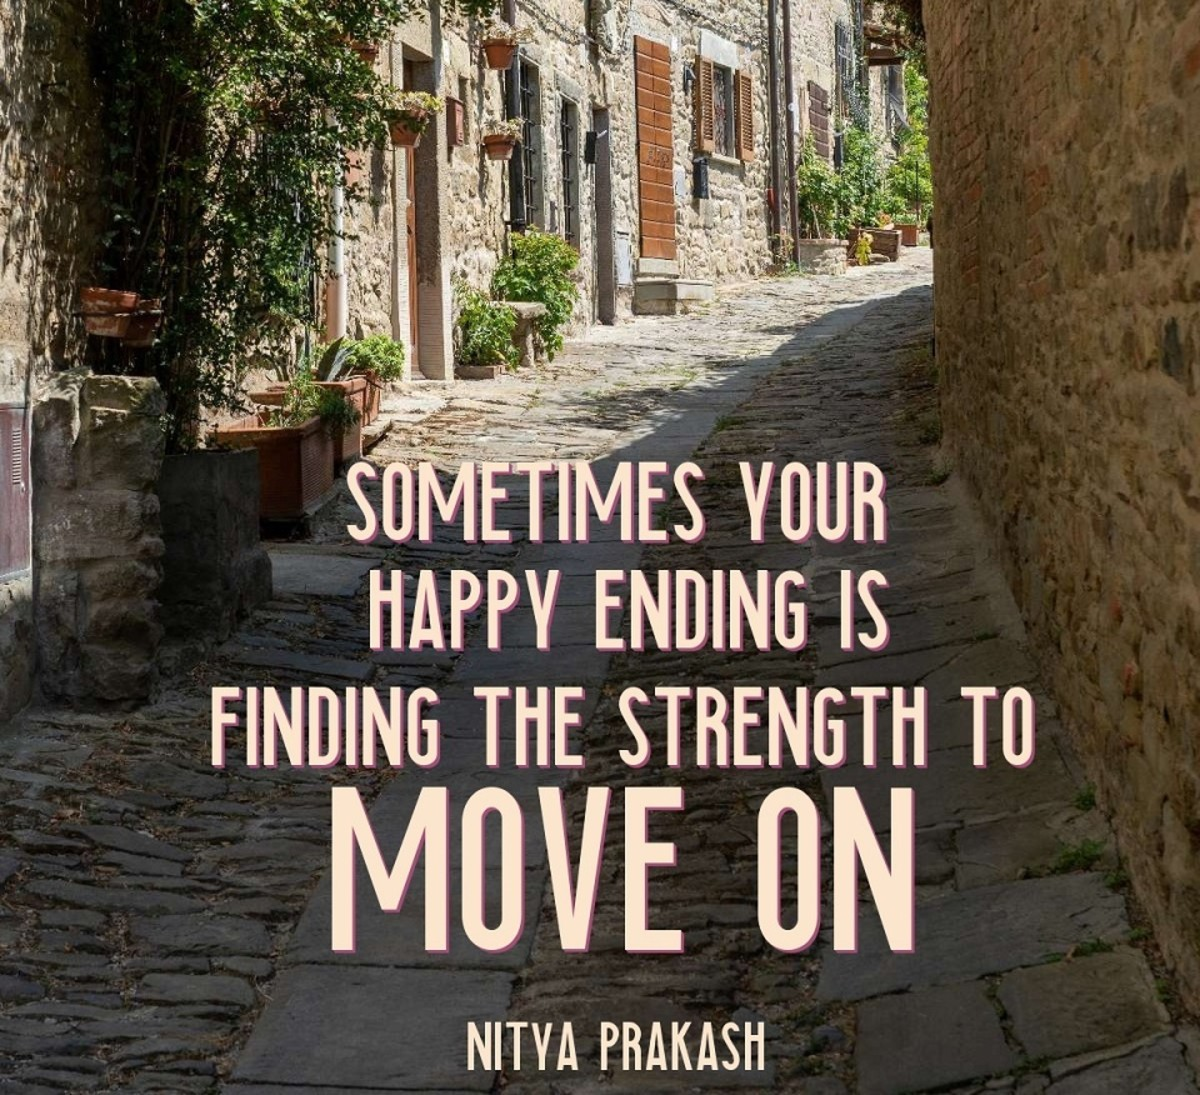 Sometimes your happy ending isn't finding love but finding the strength to move on.